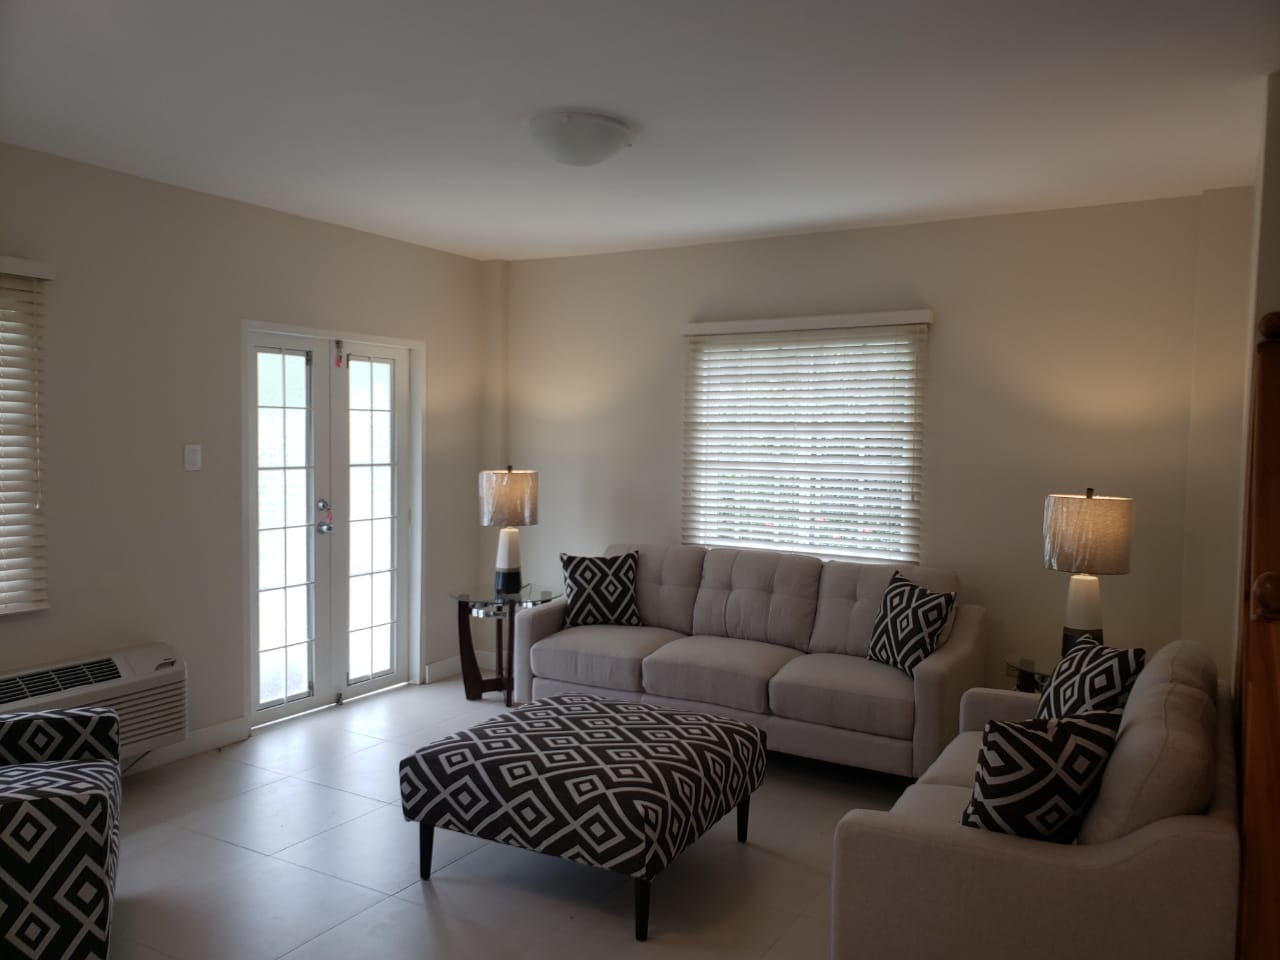 Furnished, Spacious 3 Bedroom, 2 1/2 Bath Townhouse